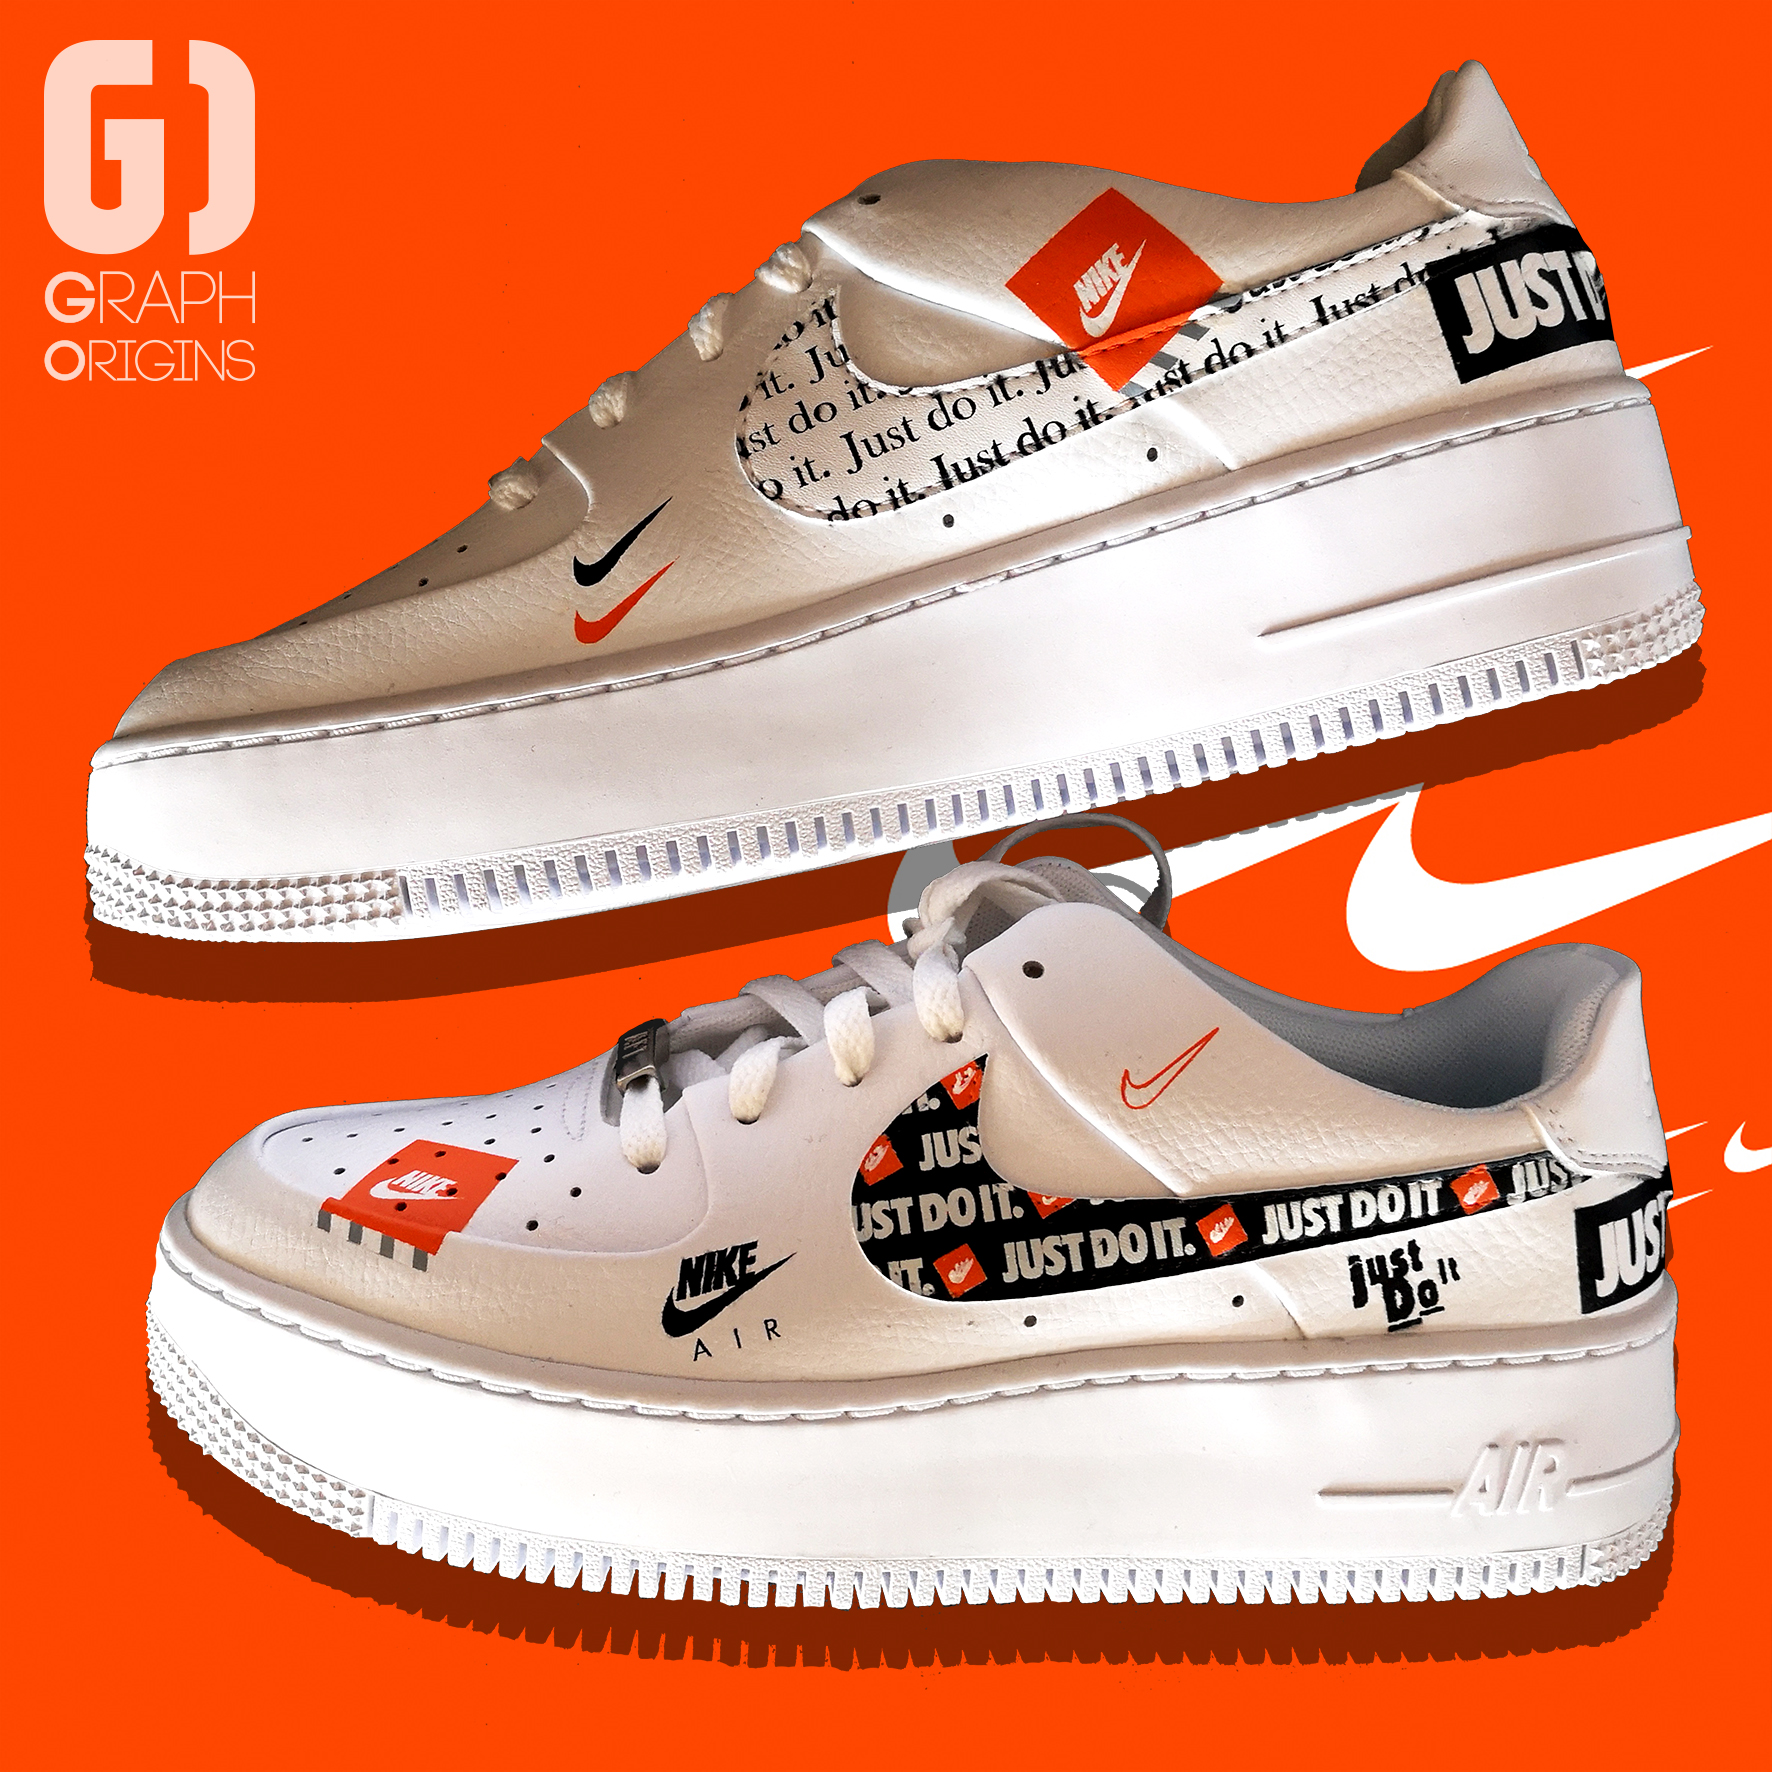 Custom Nike Air Force 1 Just do it